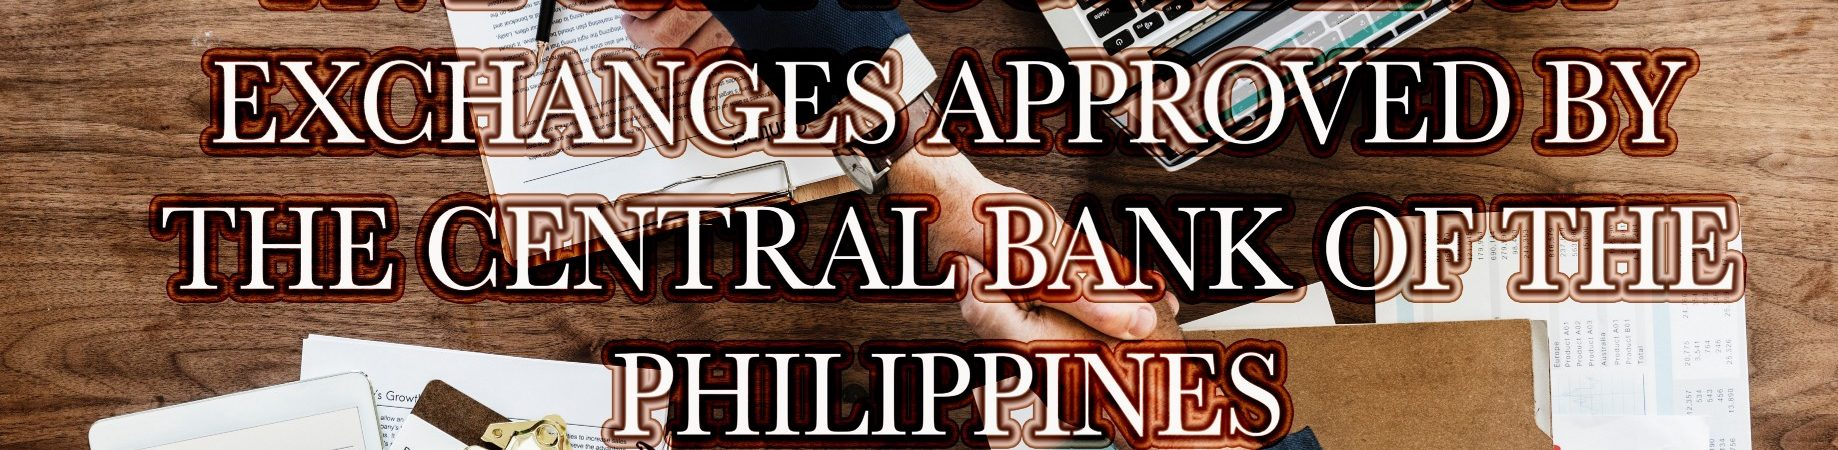 Philippines Central Bank